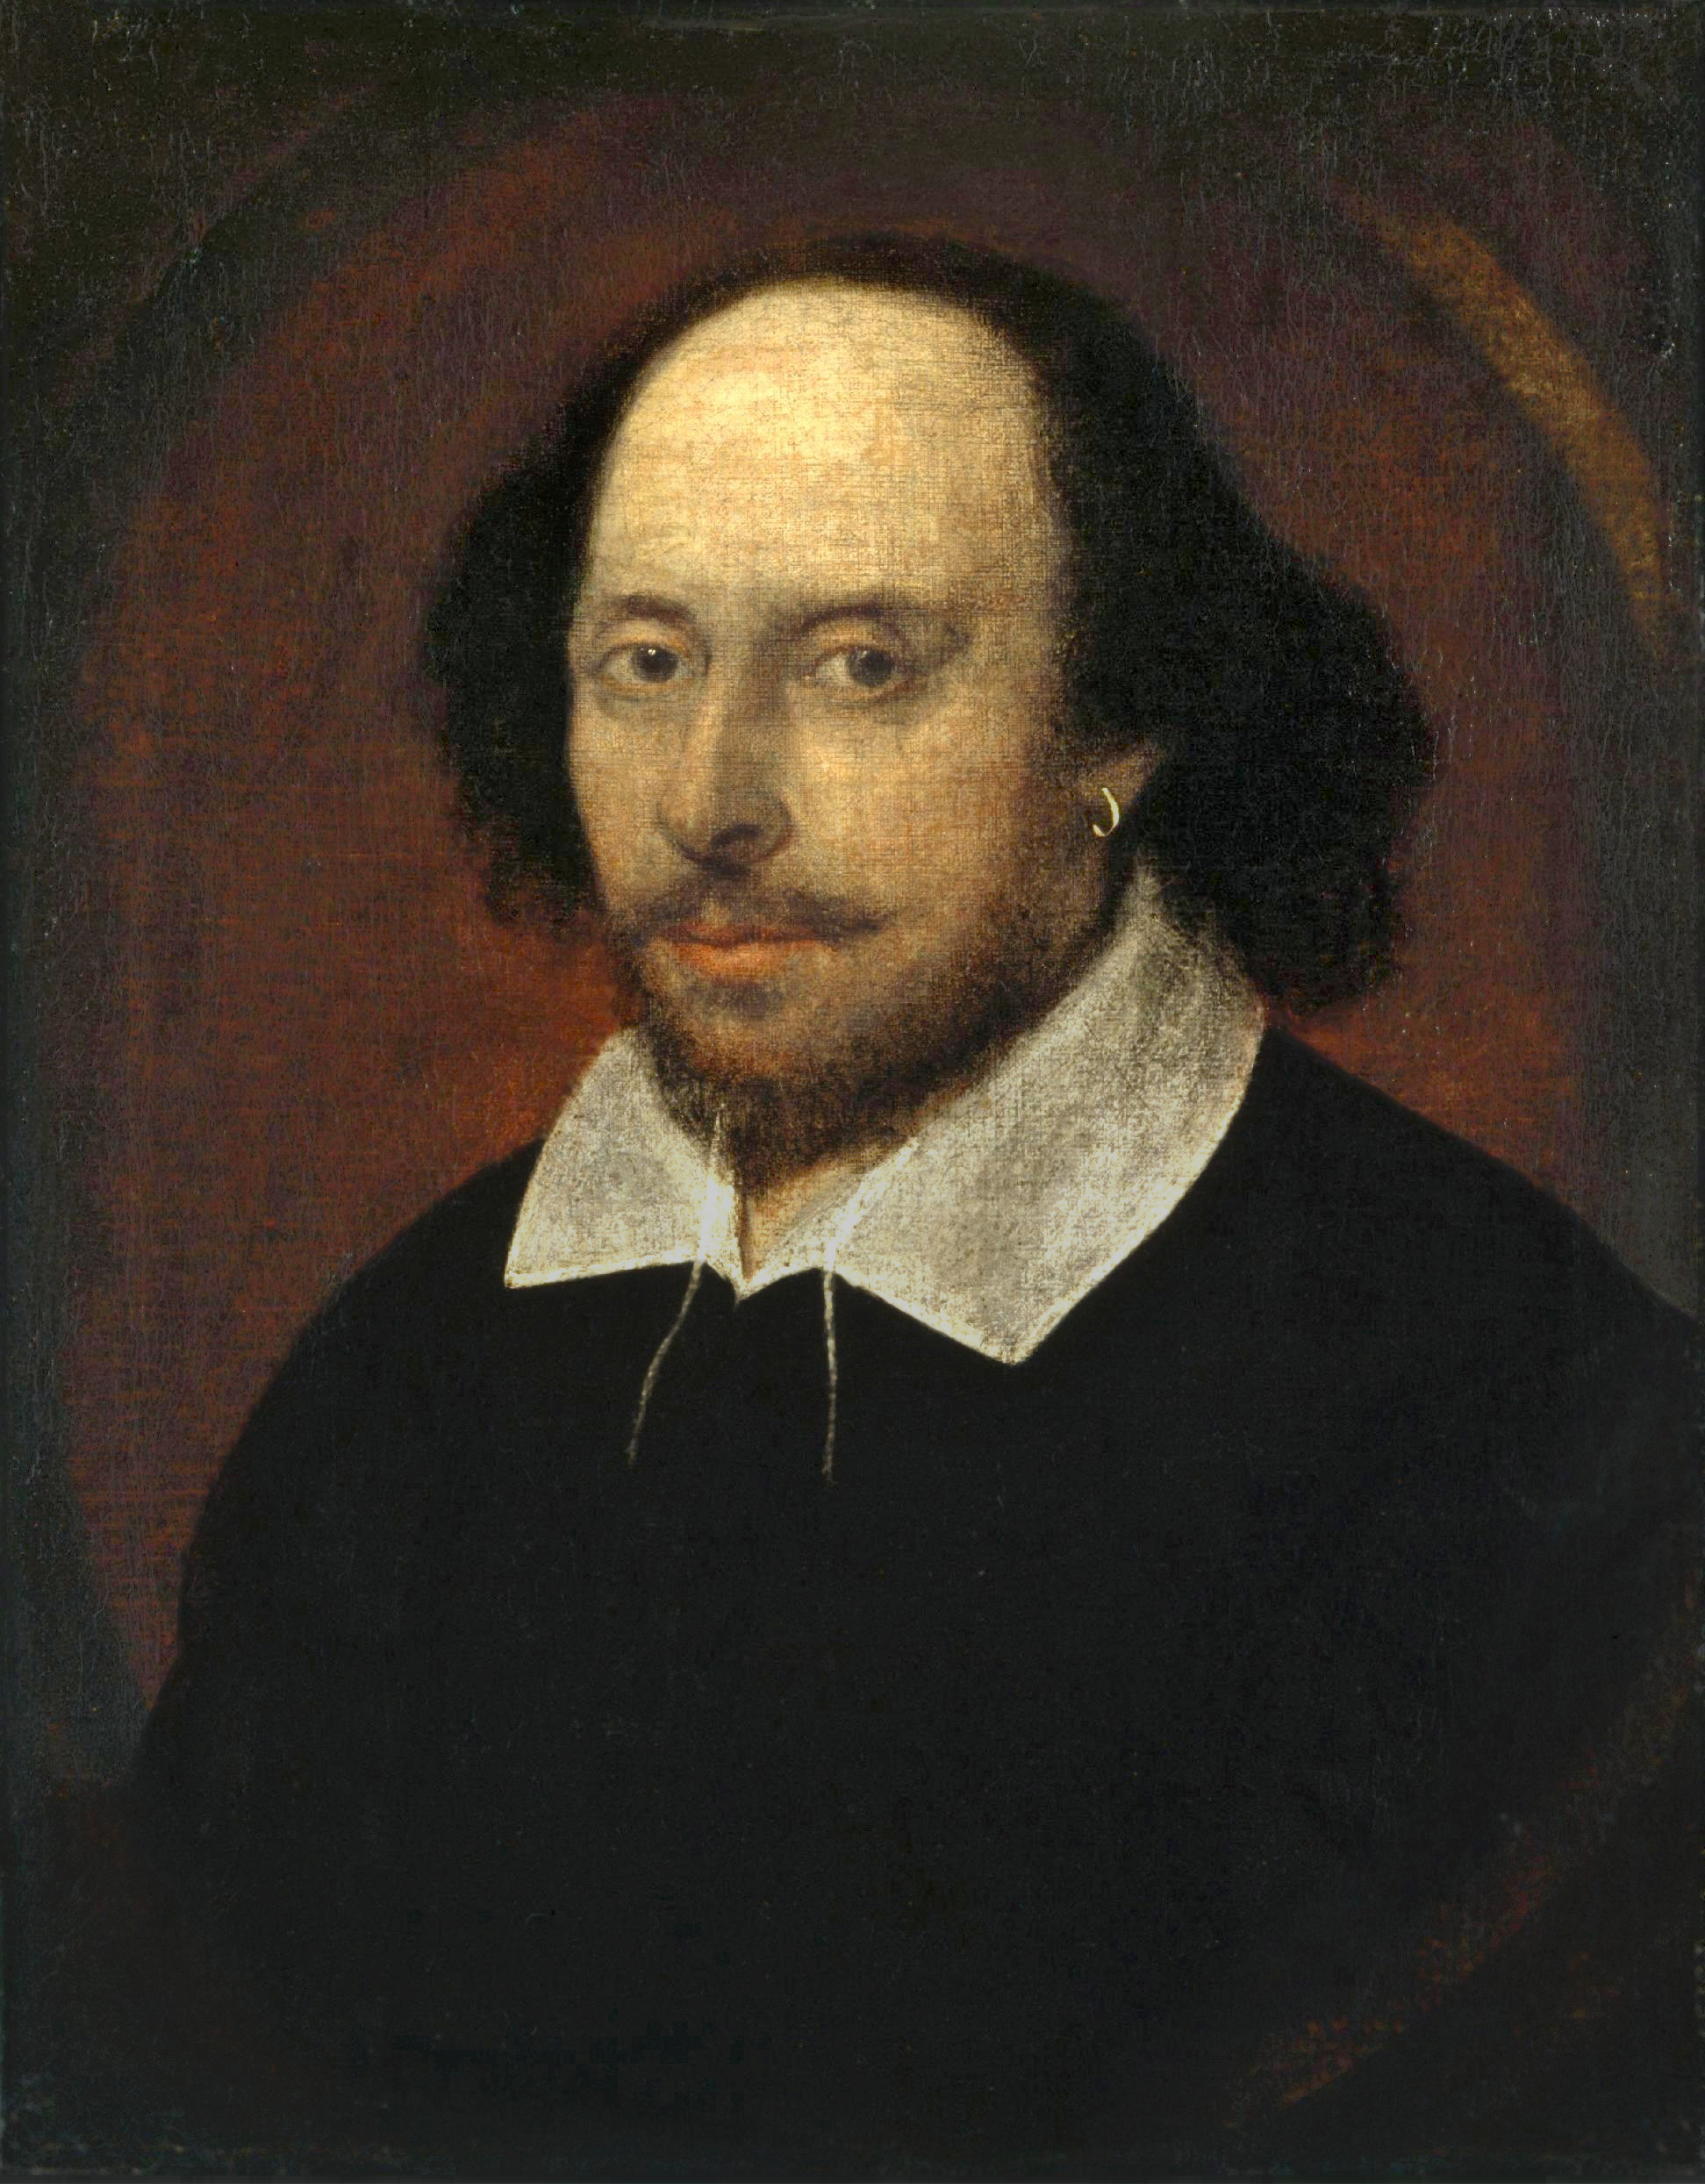 http://upload.wikimedia.org/wikipedia/commons/a/a2/Shakespeare.jpg